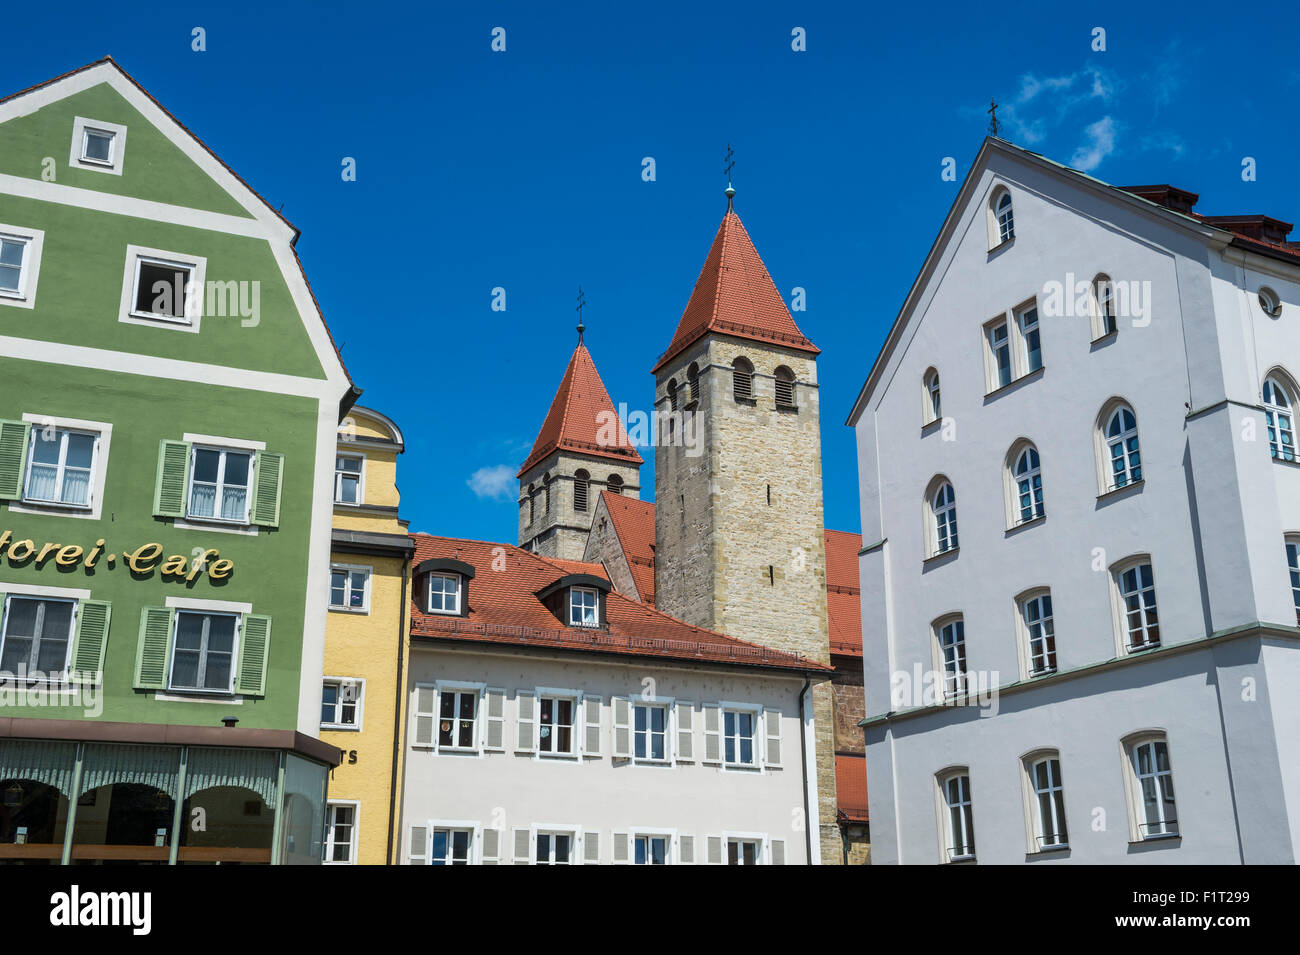 Medieval patrician houses and towers in Regensburg, UNESCO World Heritage Site, Bavaria, Germany, Europe - Stock Image